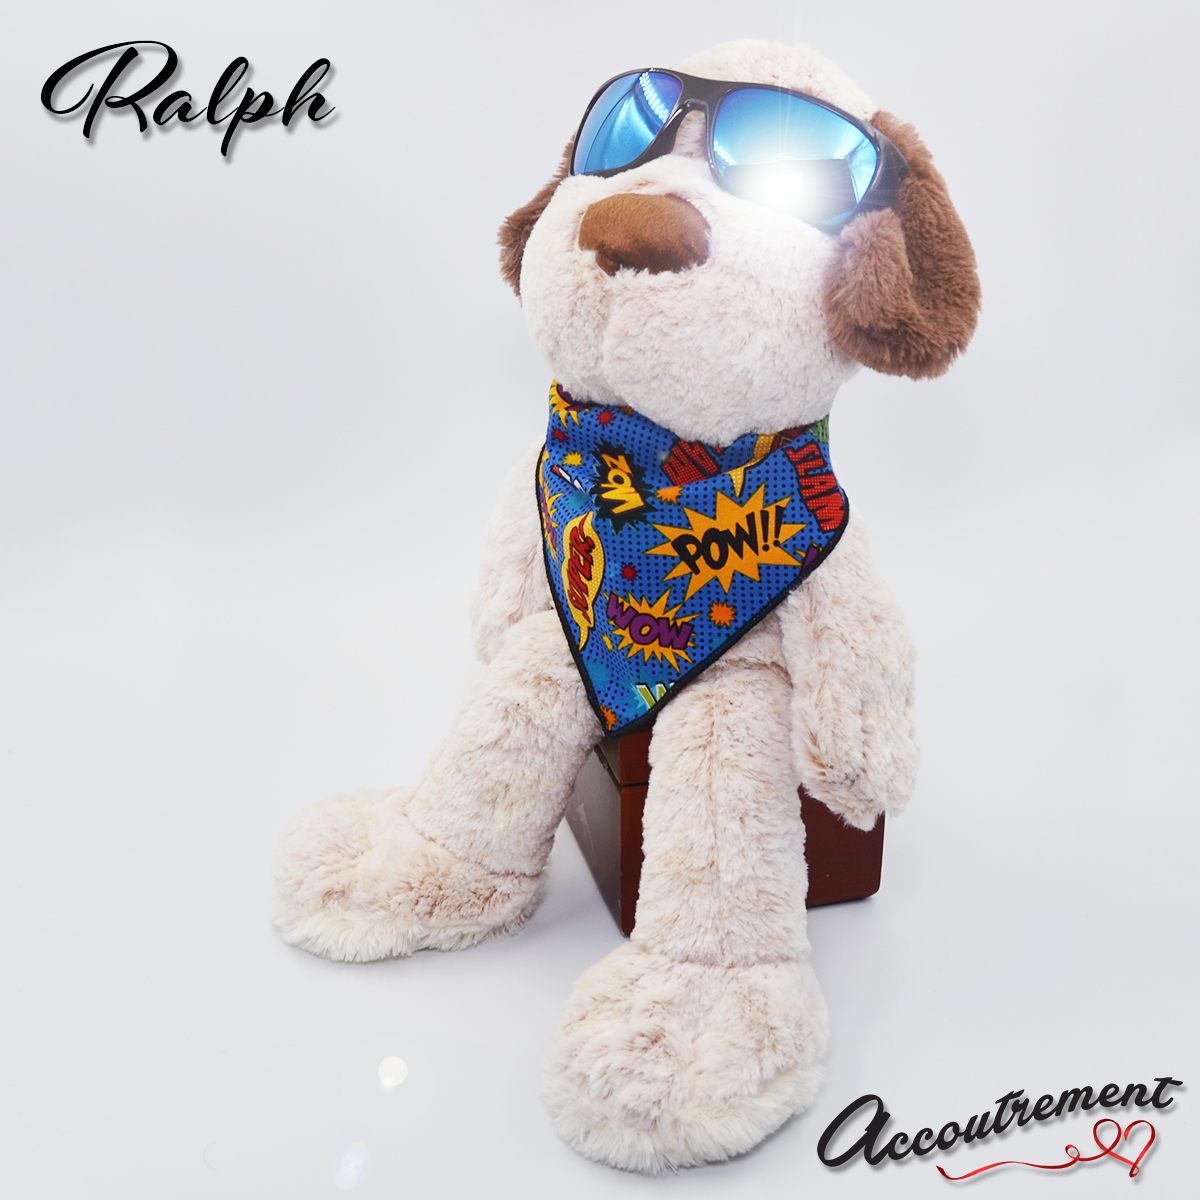 accoutrement.store glamsquad - Ralph.jpg